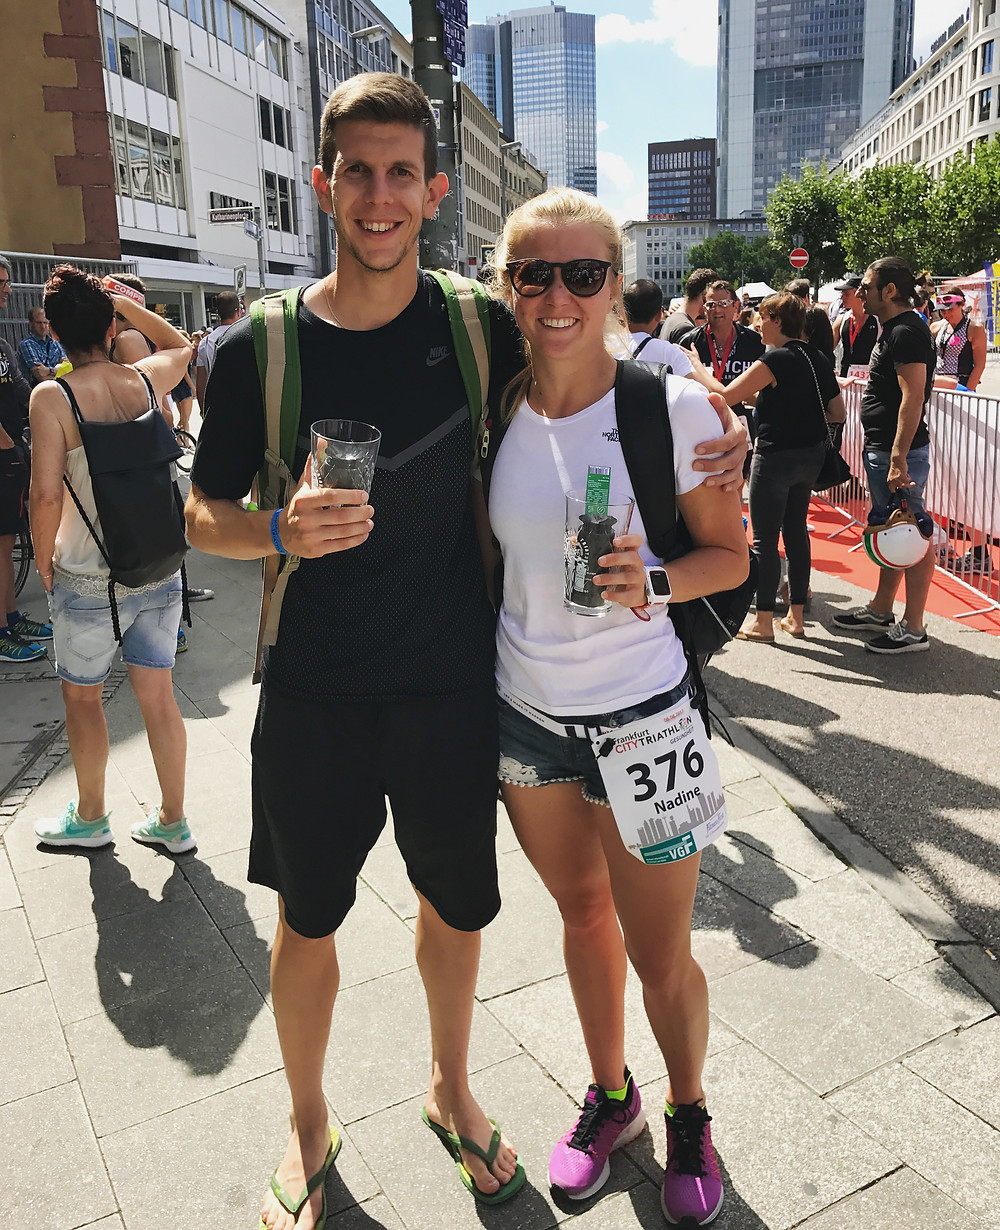 Frankfurt City Triathlon 2017